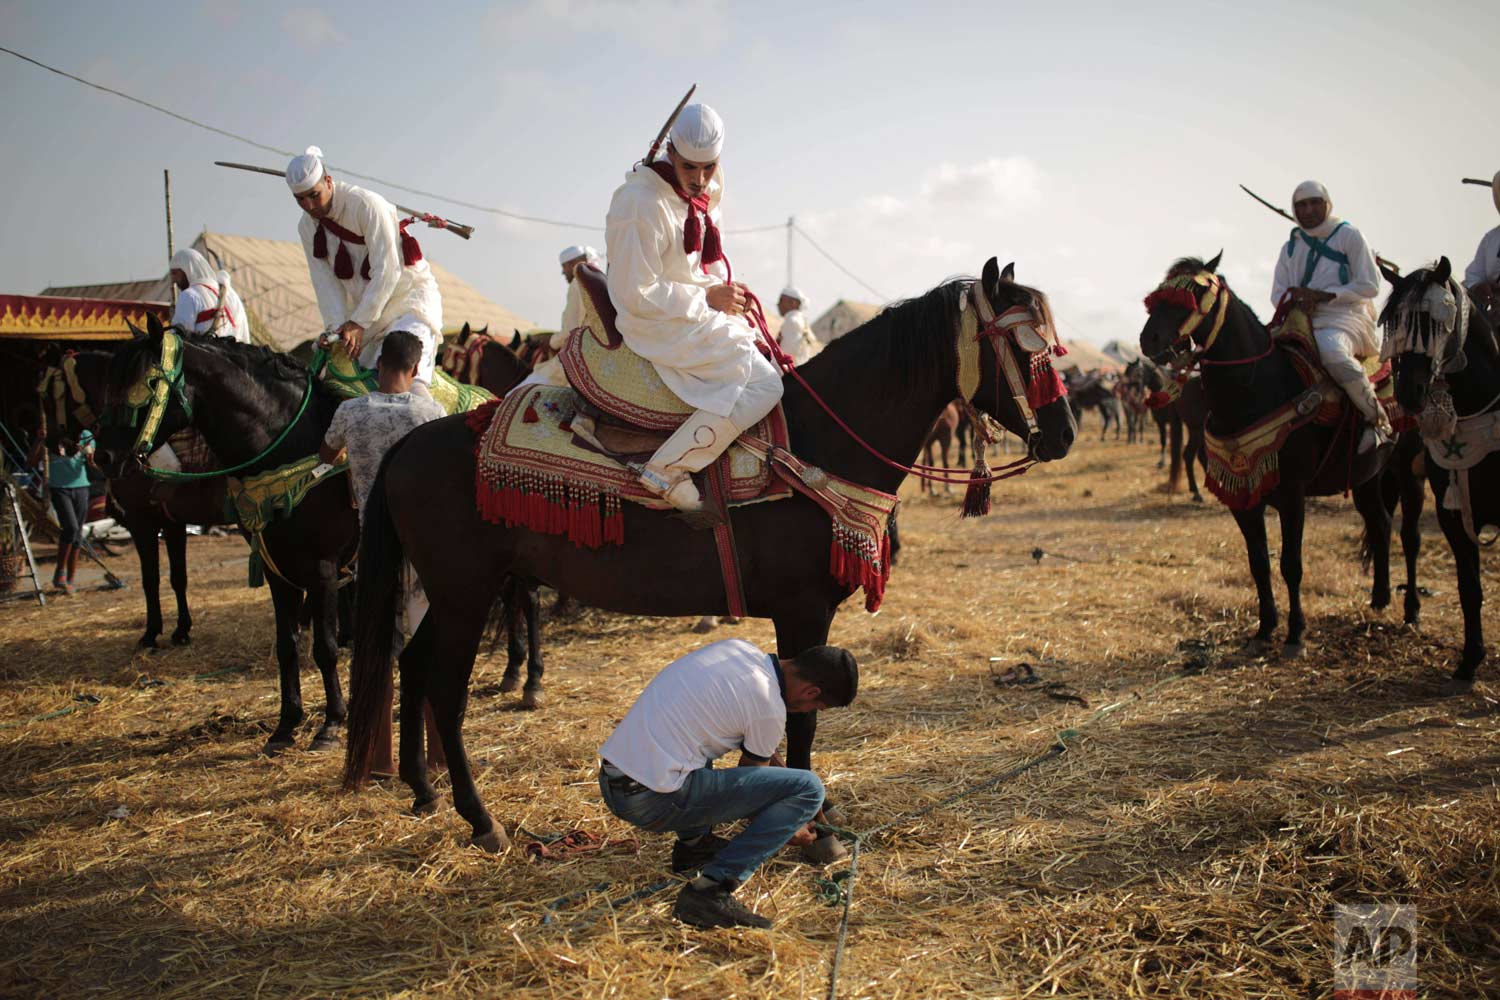 In this Thursday, Aug. 17, 2017 photo, horsemen prepare their horses before taking part in Tabourida, a traditional horse riding show also known as Fantasia, in Mansouria, near Casablanca, Morocco. (AP Photo/Mosa'ab Elshamy)